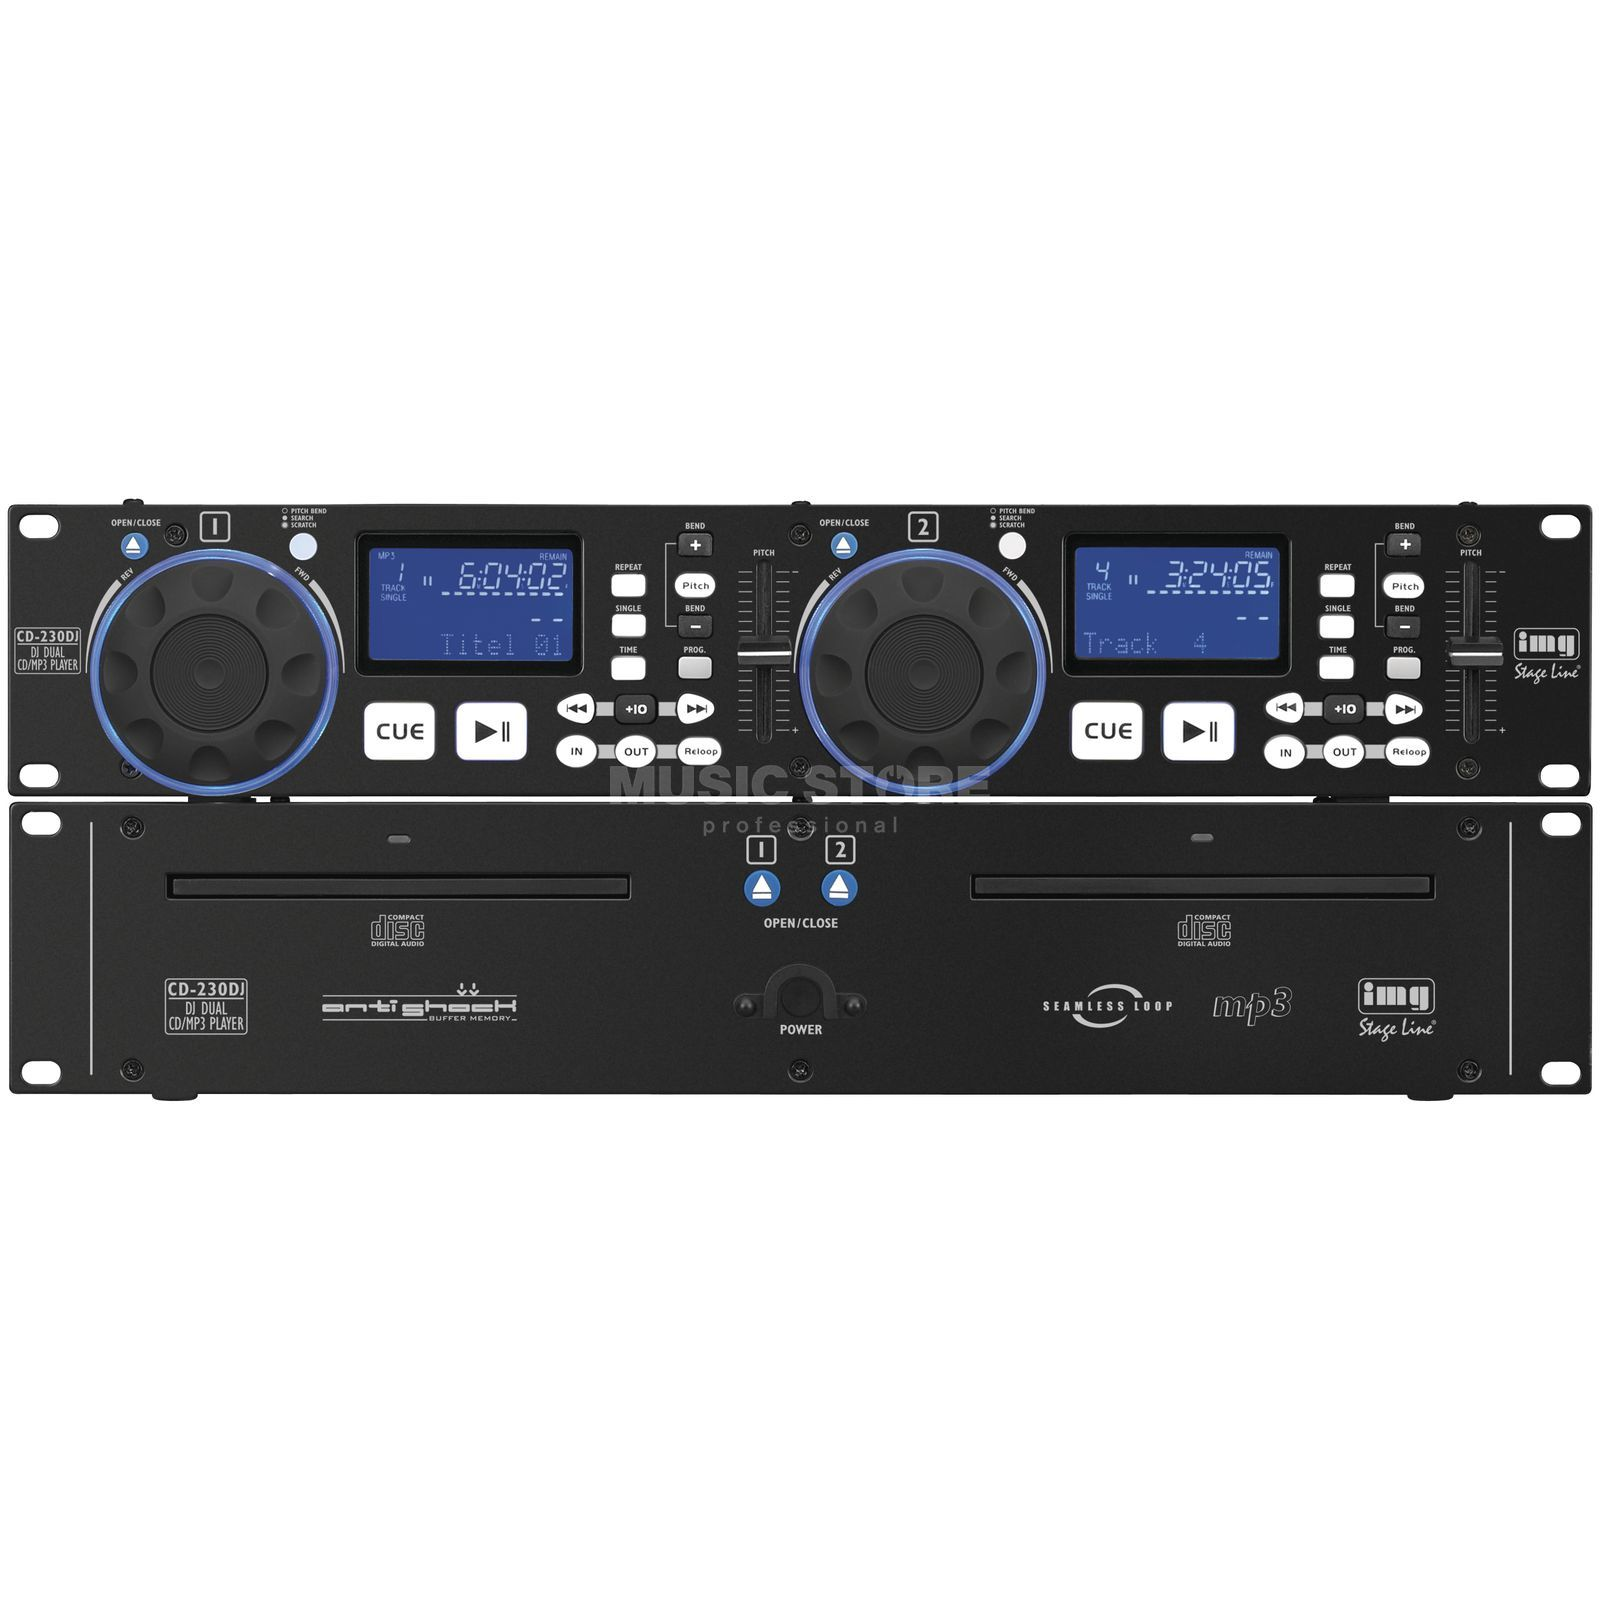 IMG STAGELINE CD-230DJ DJ-Dual-CD-/MP3-Player Изображение товара